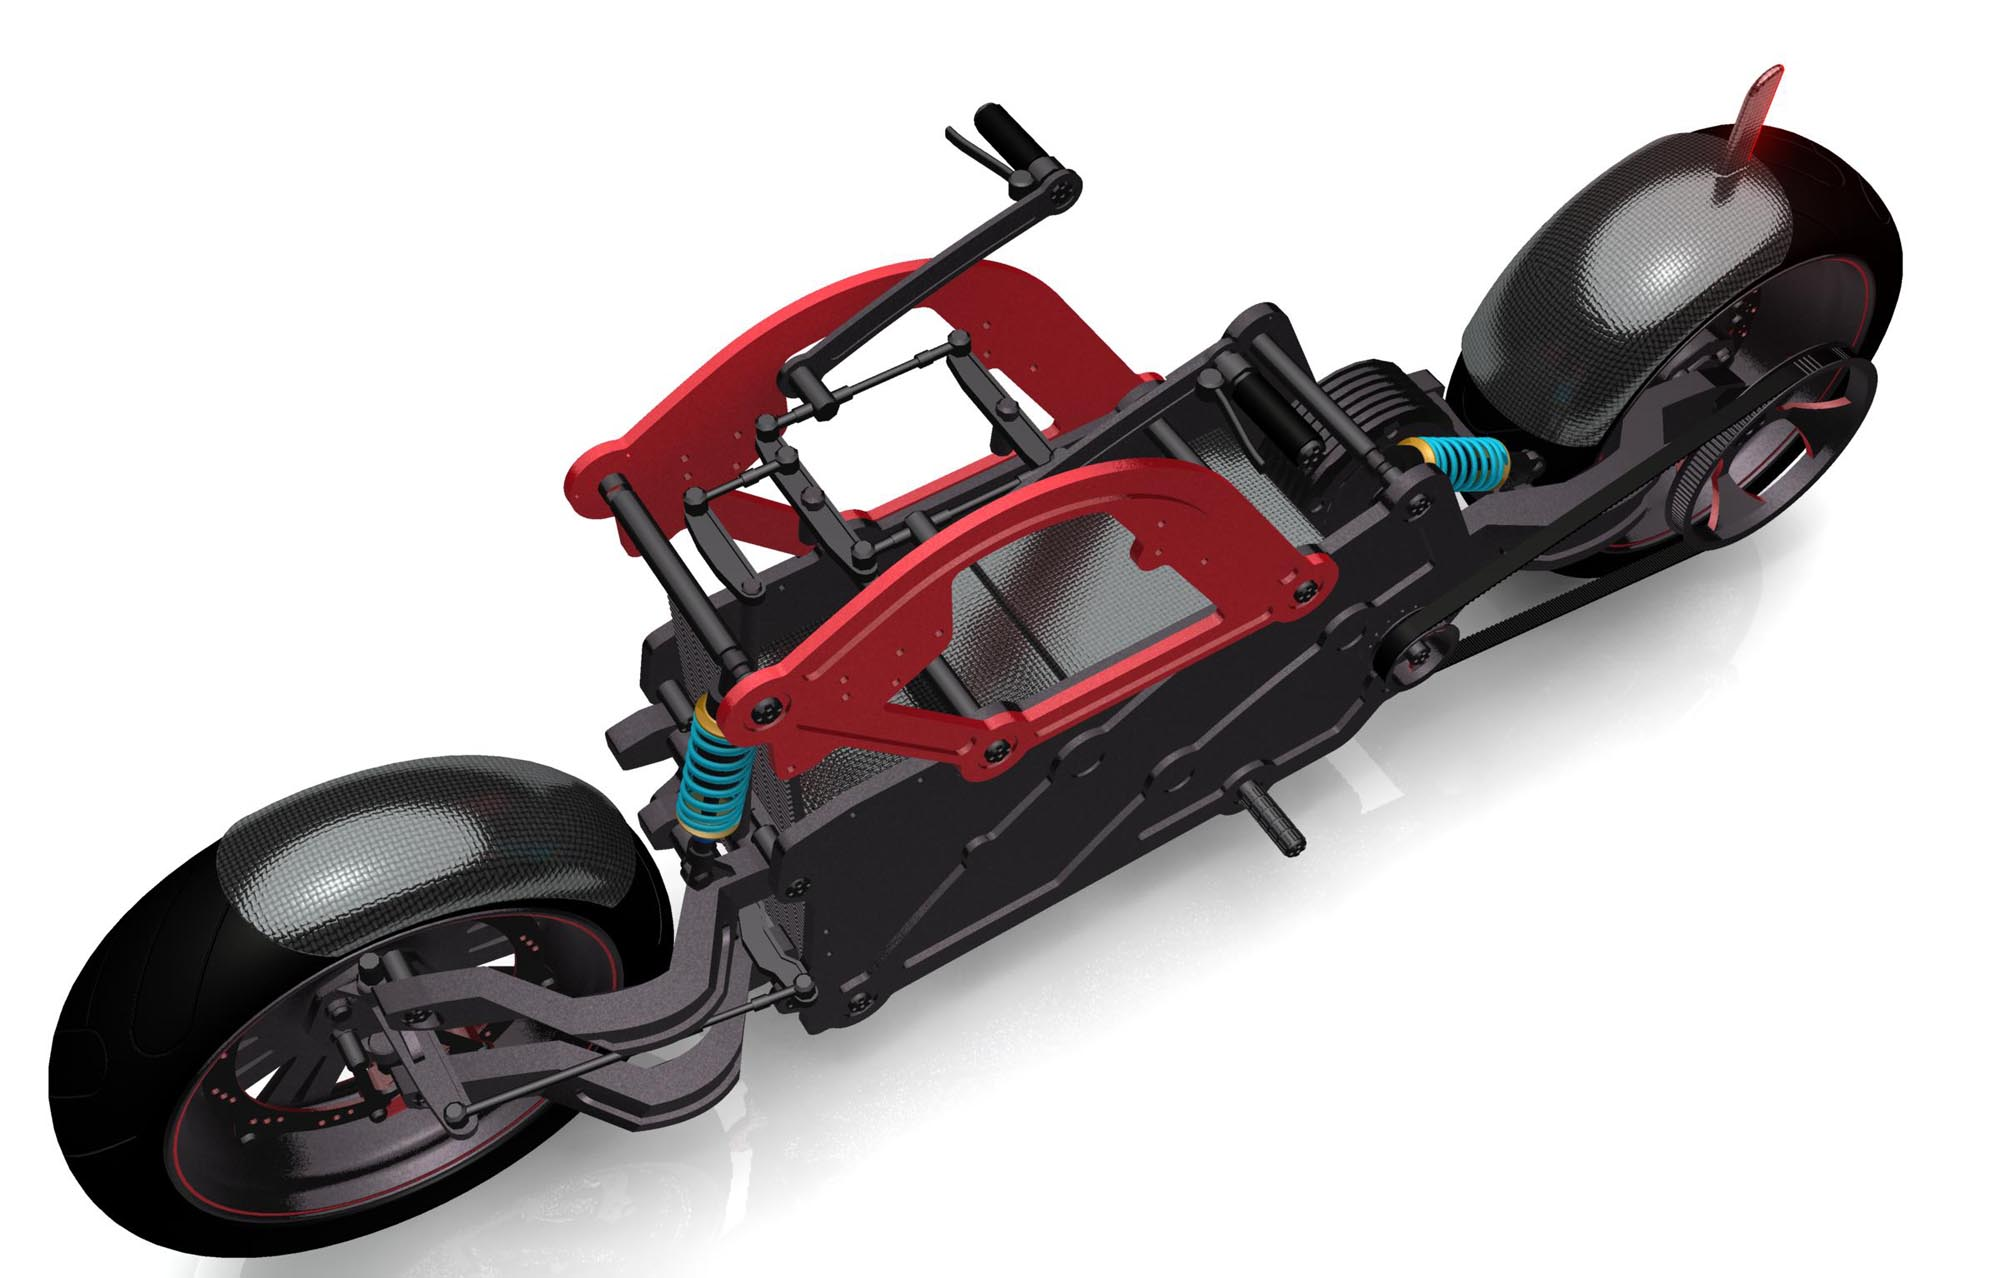 ELECTRIC SCOOTER RACING ELECTRIC SCOOTER